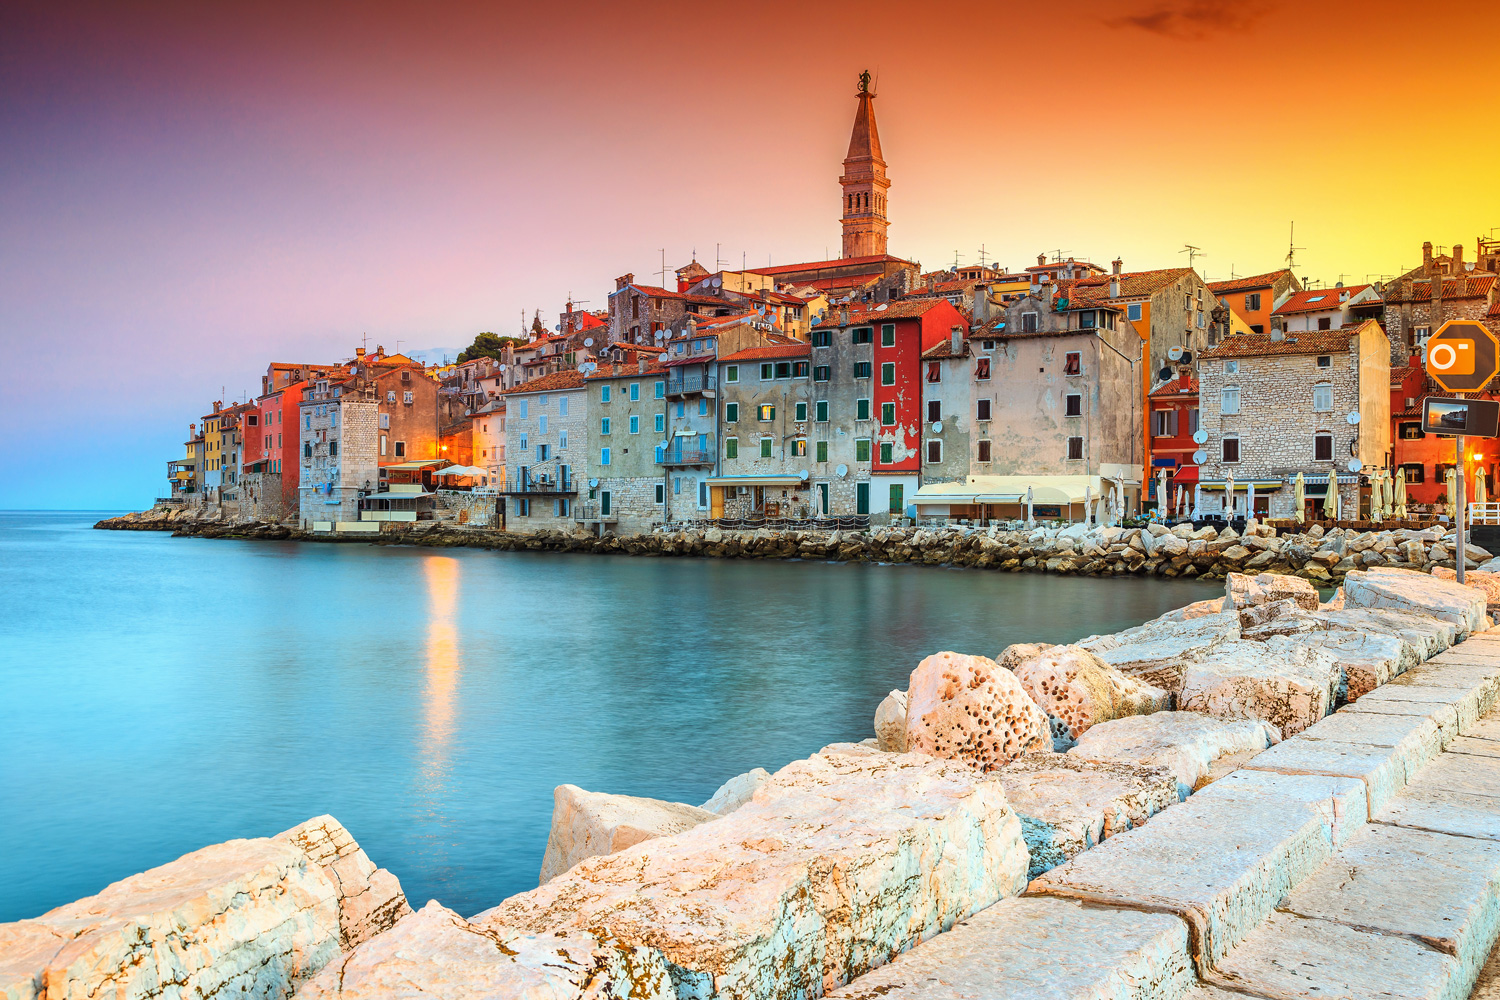 Stunning romantic old town of Rovinj, Croatia with colorful buildings and a magical sunset